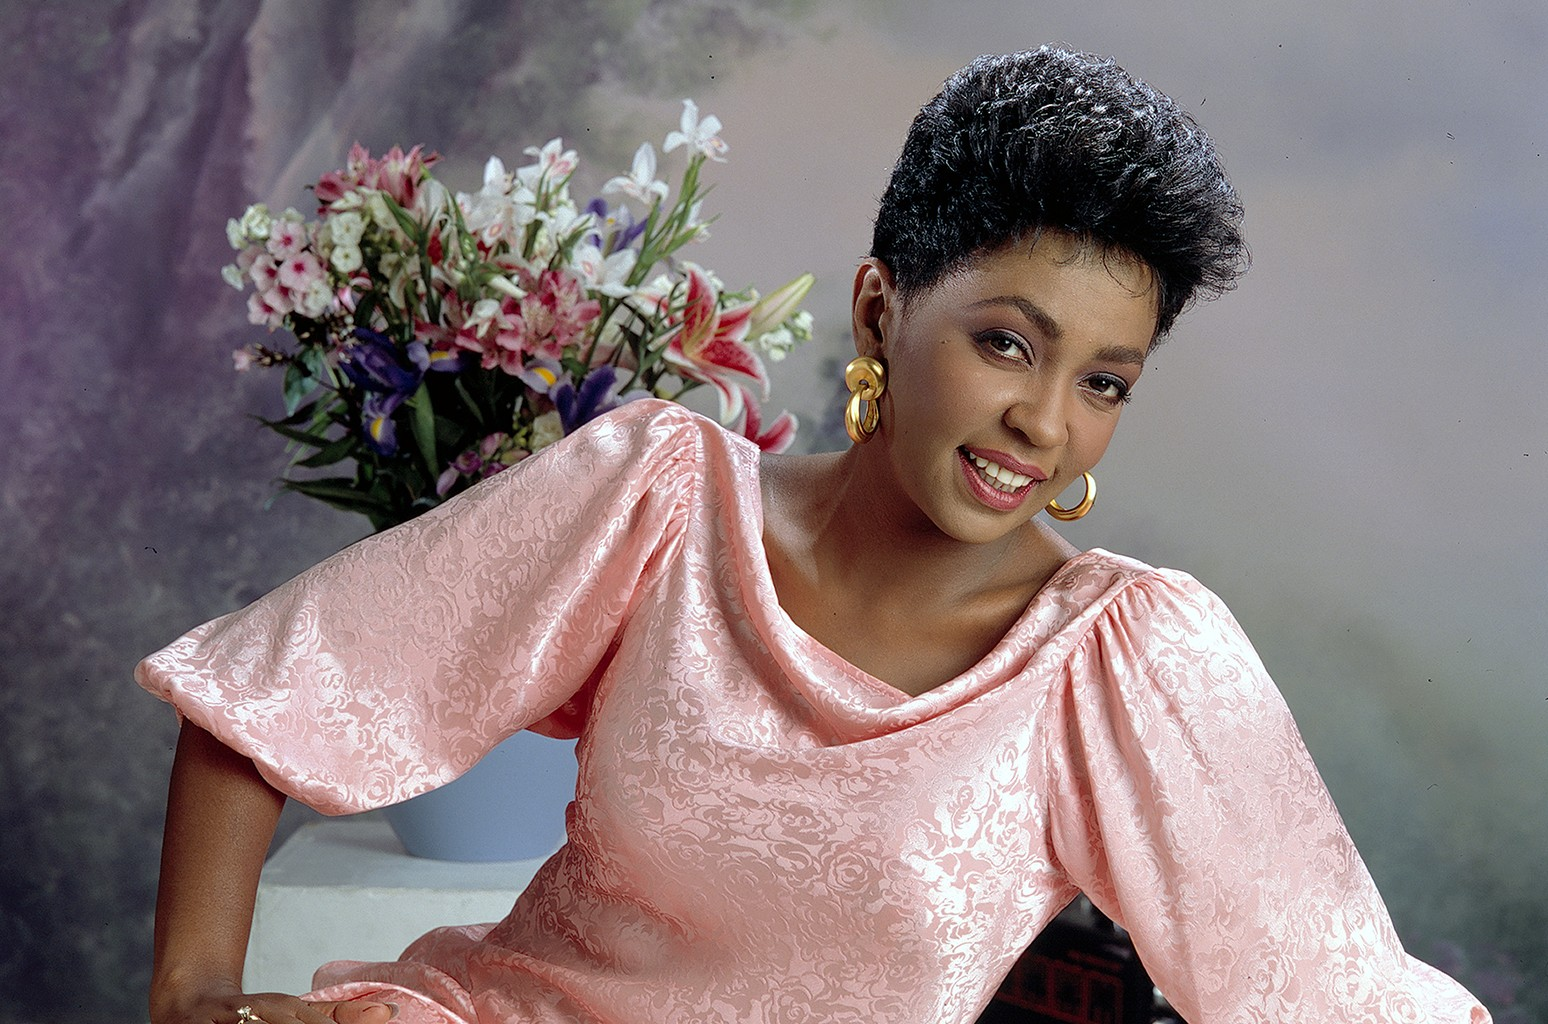 Anita Baker photographed in the 1980s.